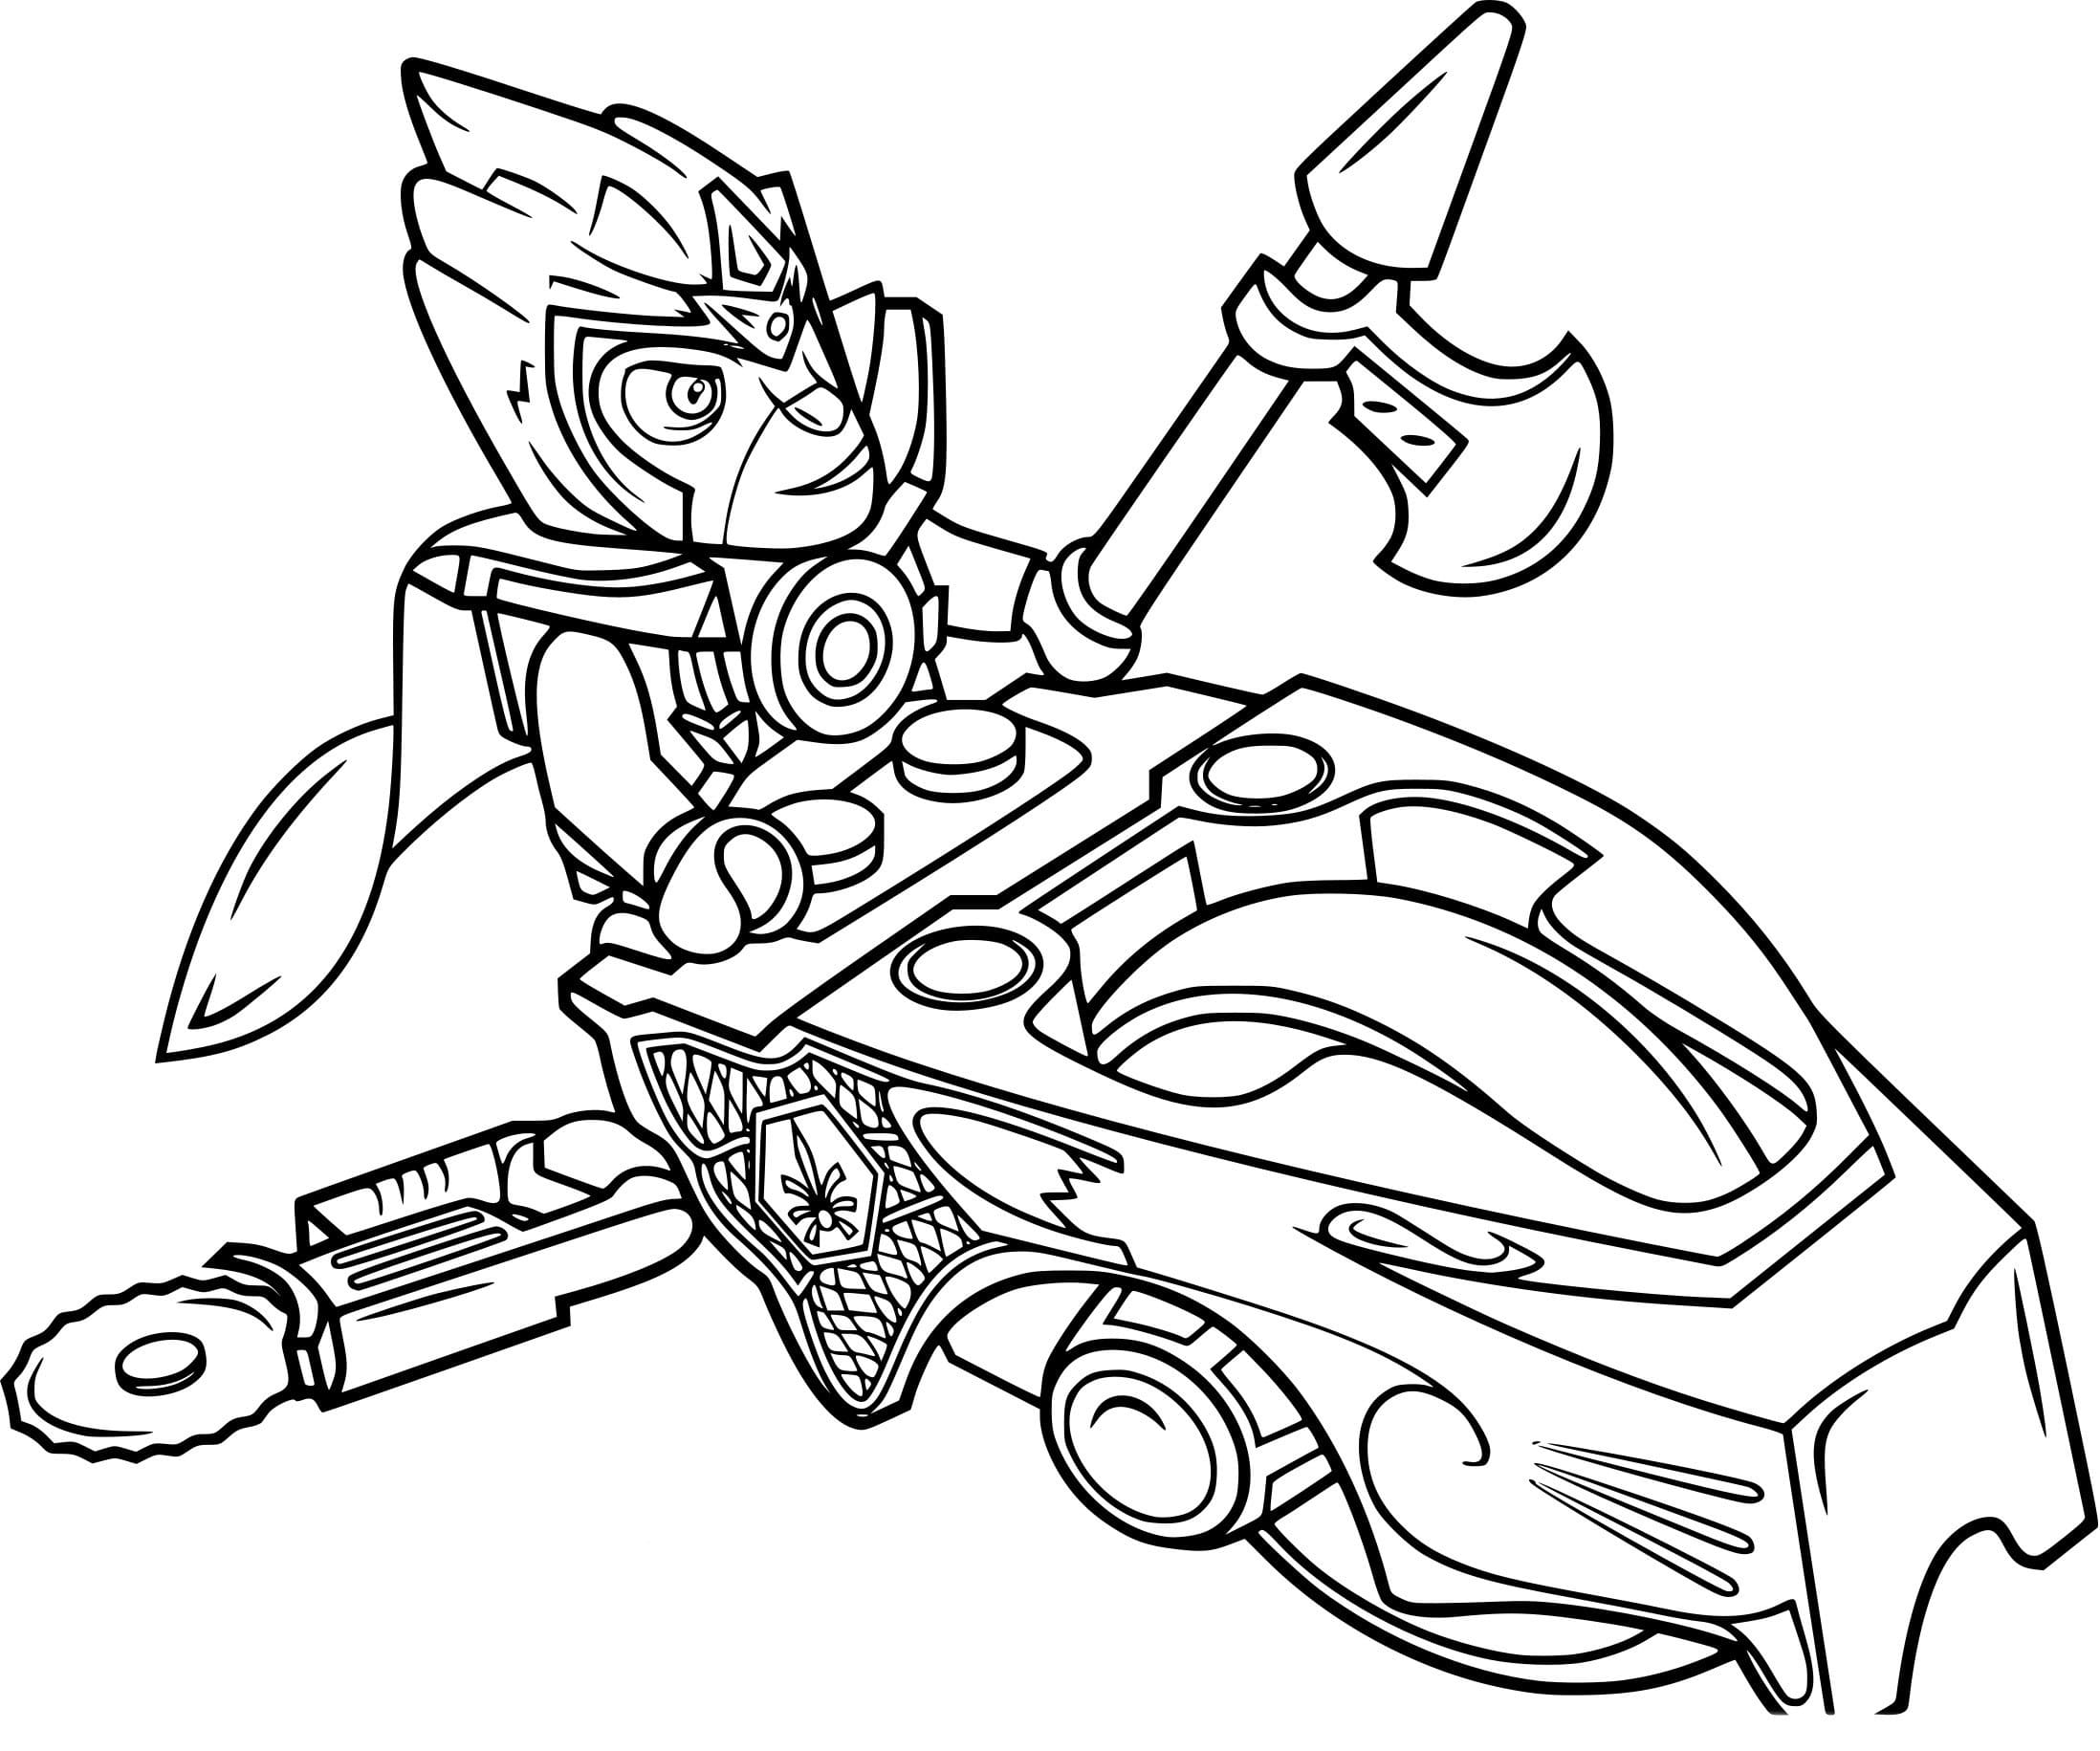 Lego Coloring Pages Download Or Print For Free 100 Images